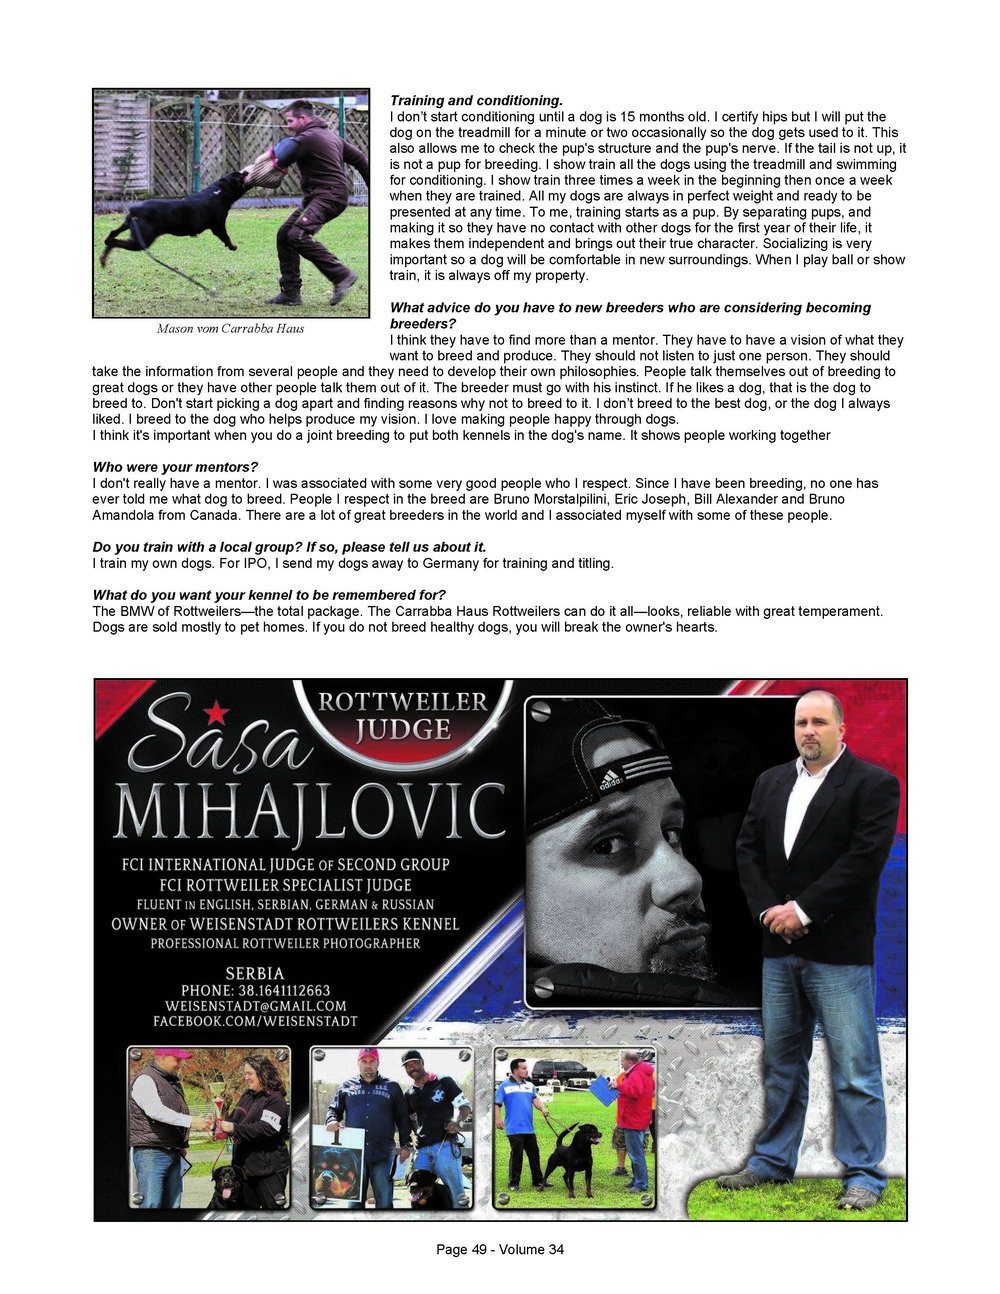 Vince_German_Article_Page_5.jpg